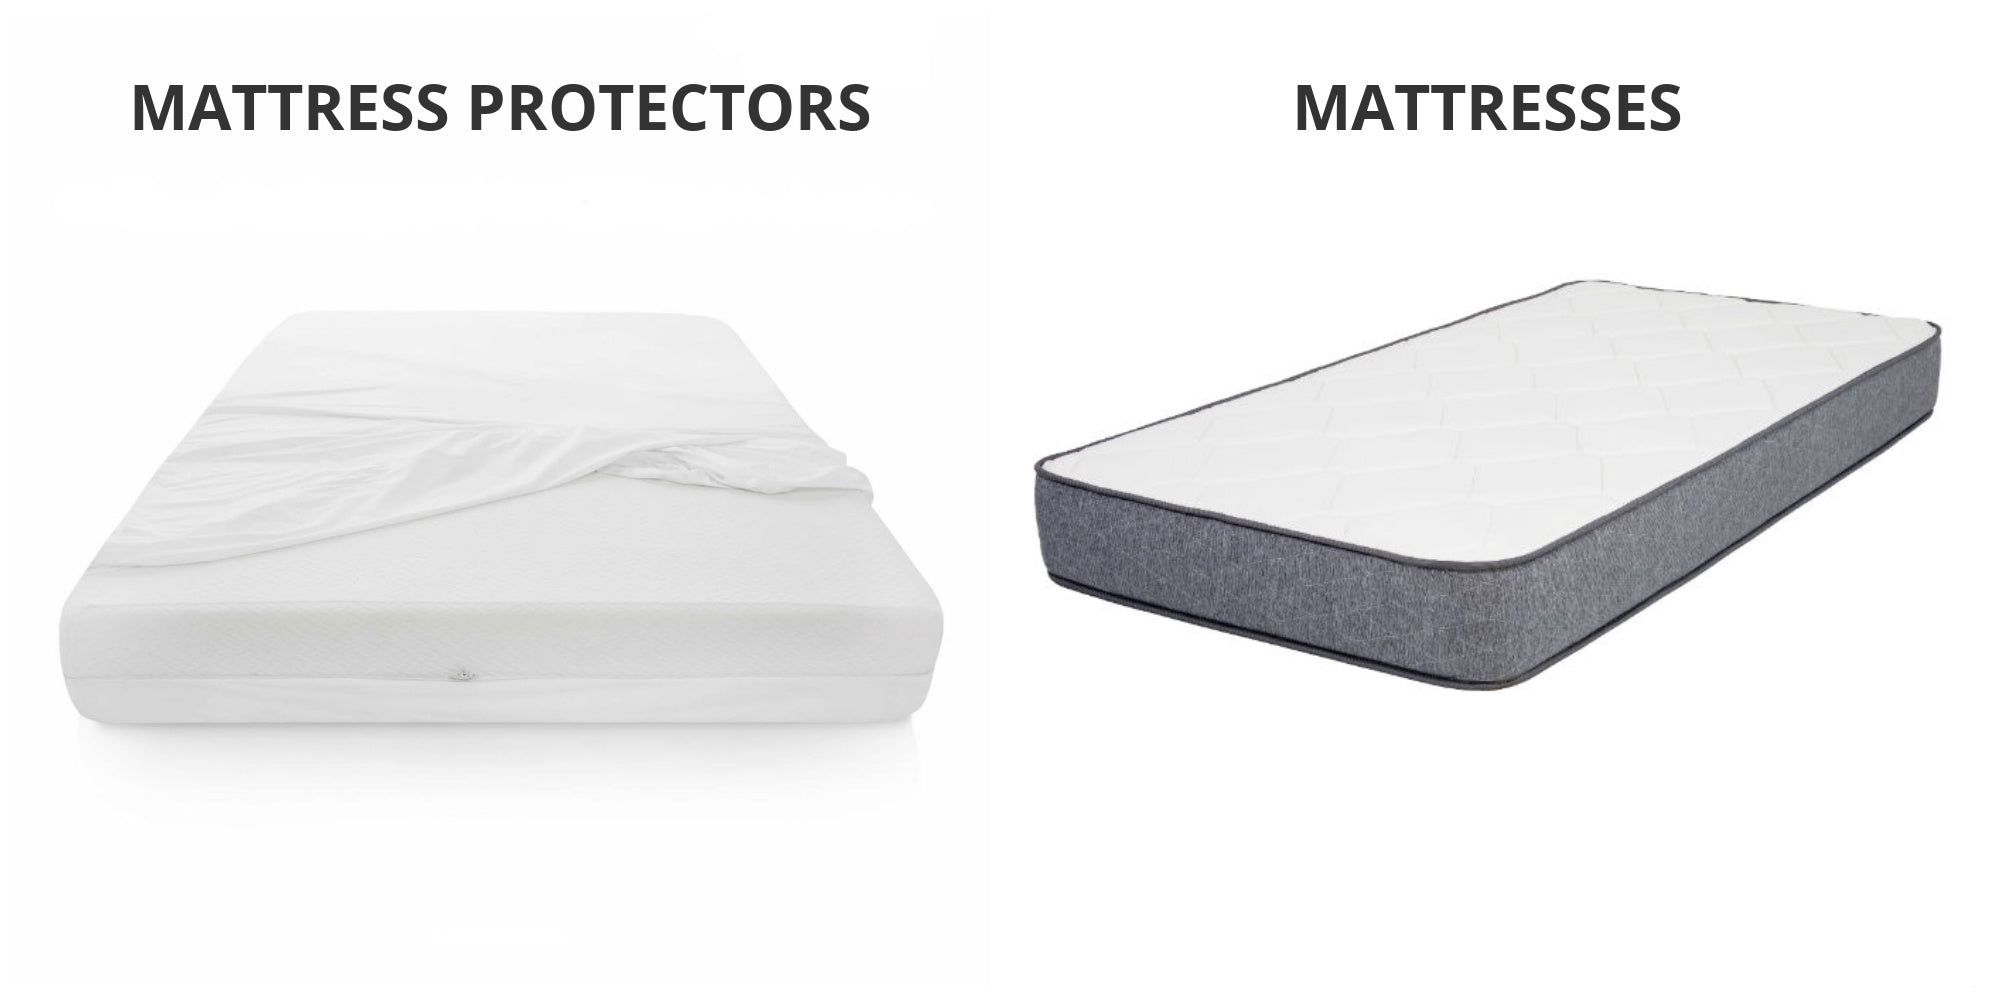 Mattresses & Protectors | Good Host Shop